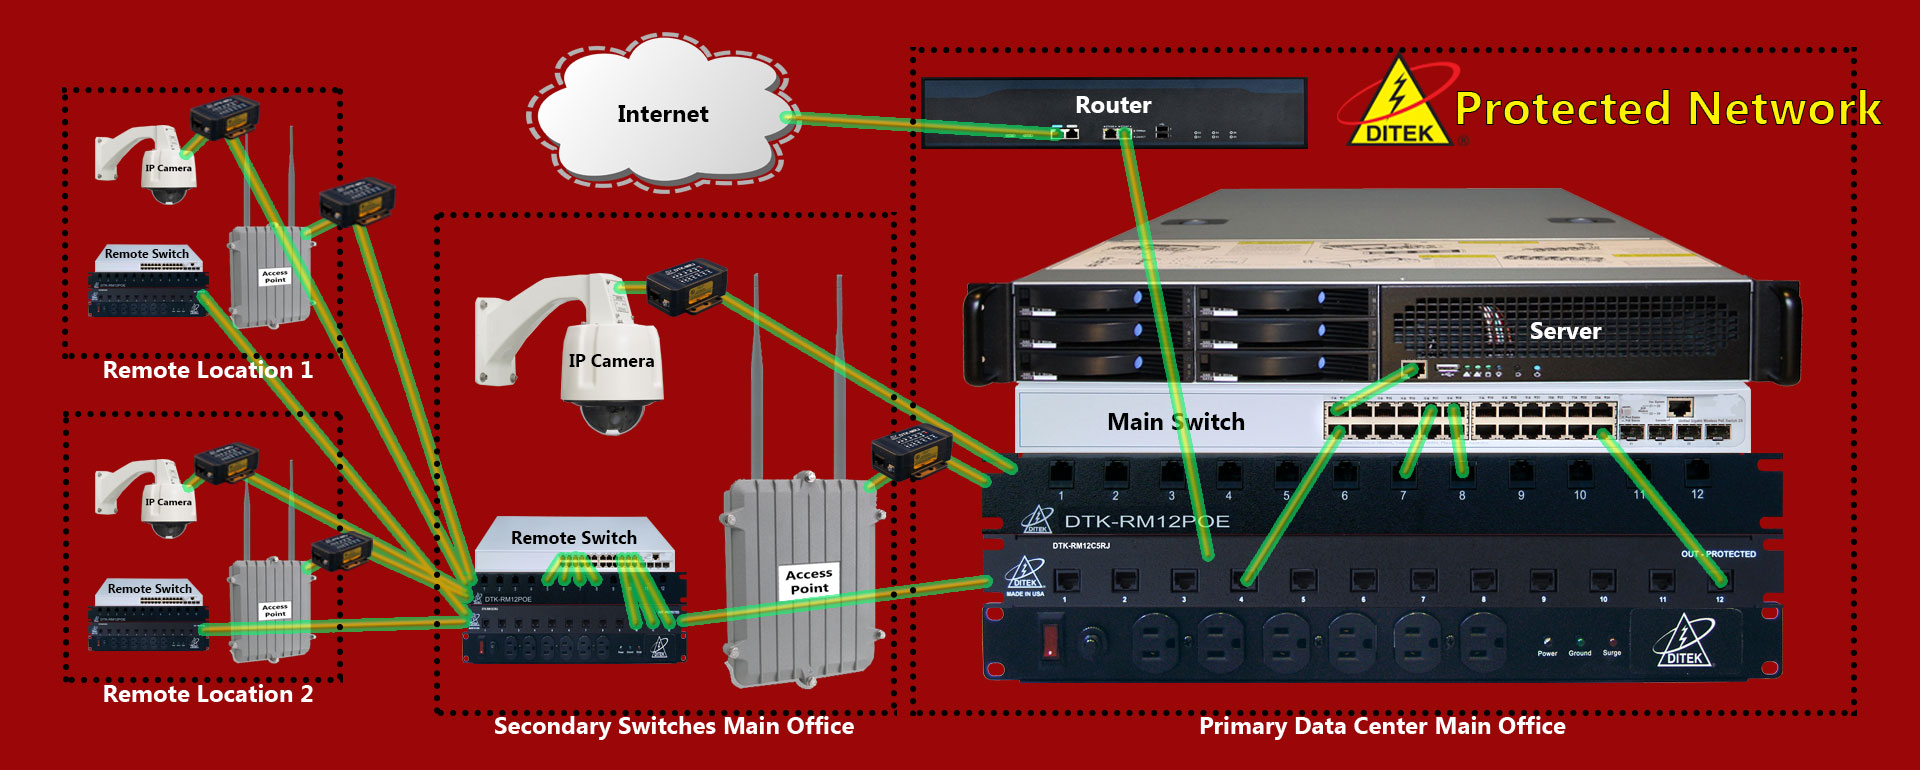 Accu Insider Security Dsx Access Control Wiring Diagram Protecting Your Network Against Power Surges And Spikes